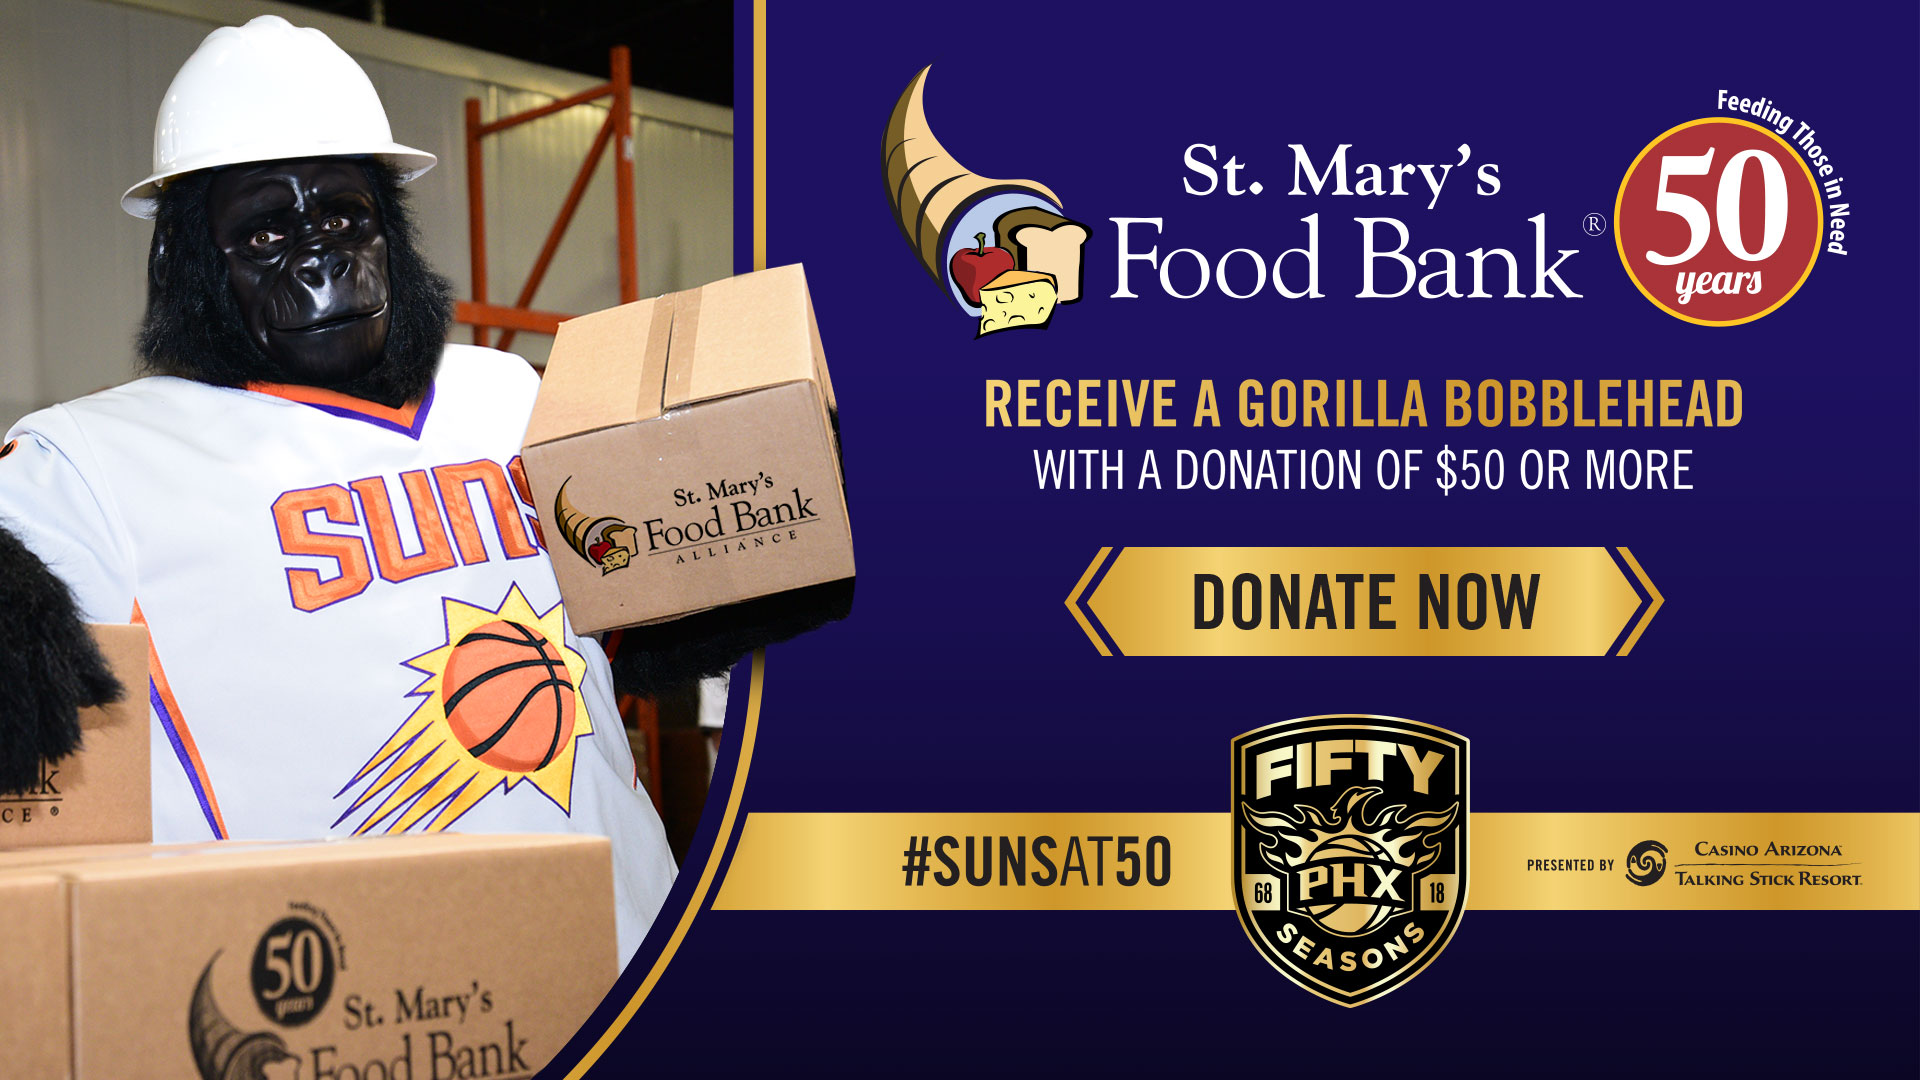 St.Mary's Food Bank tax deductible donation